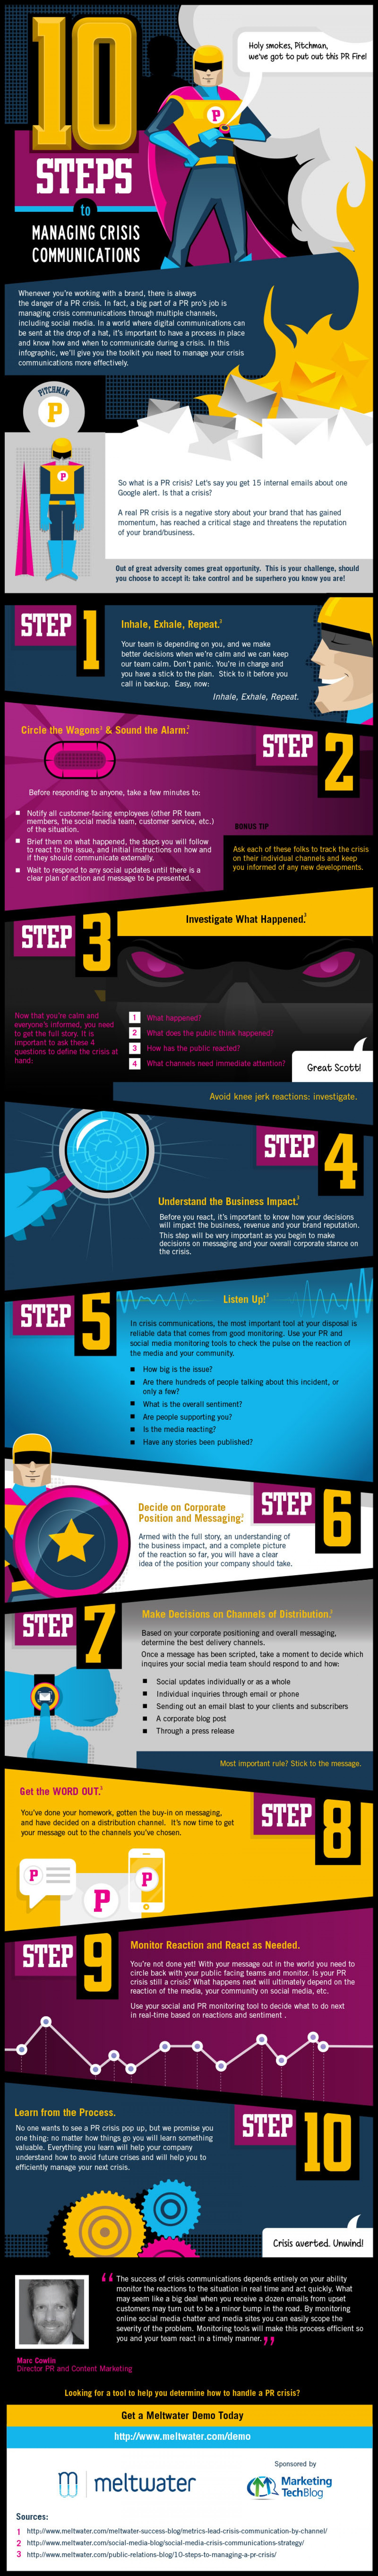 The 10 Steps Of Crisis Communications Infographic Social Media Infographic Infographic Marketing Social Media Strategies